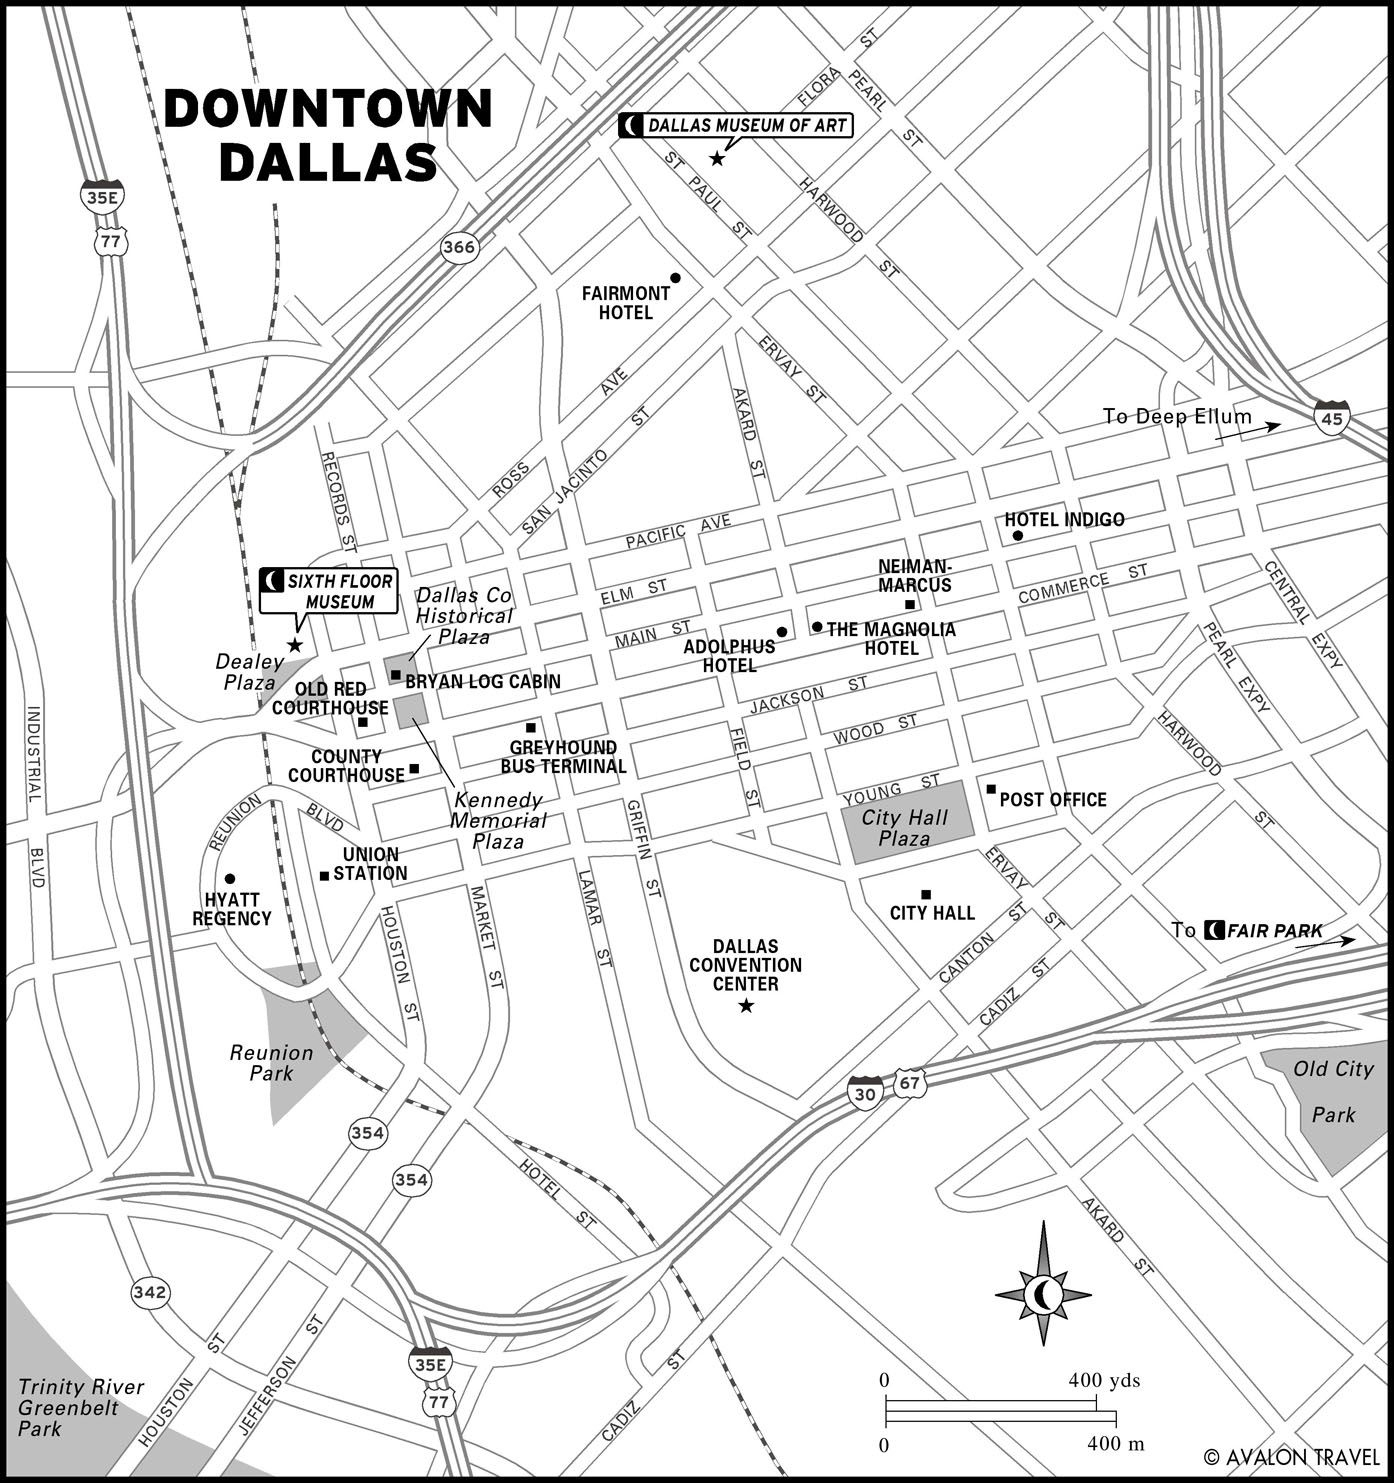 Printable Travel Maps Of The Southwest & Texas | Maps | Dallas Map - Map Of Downtown Dallas Texas